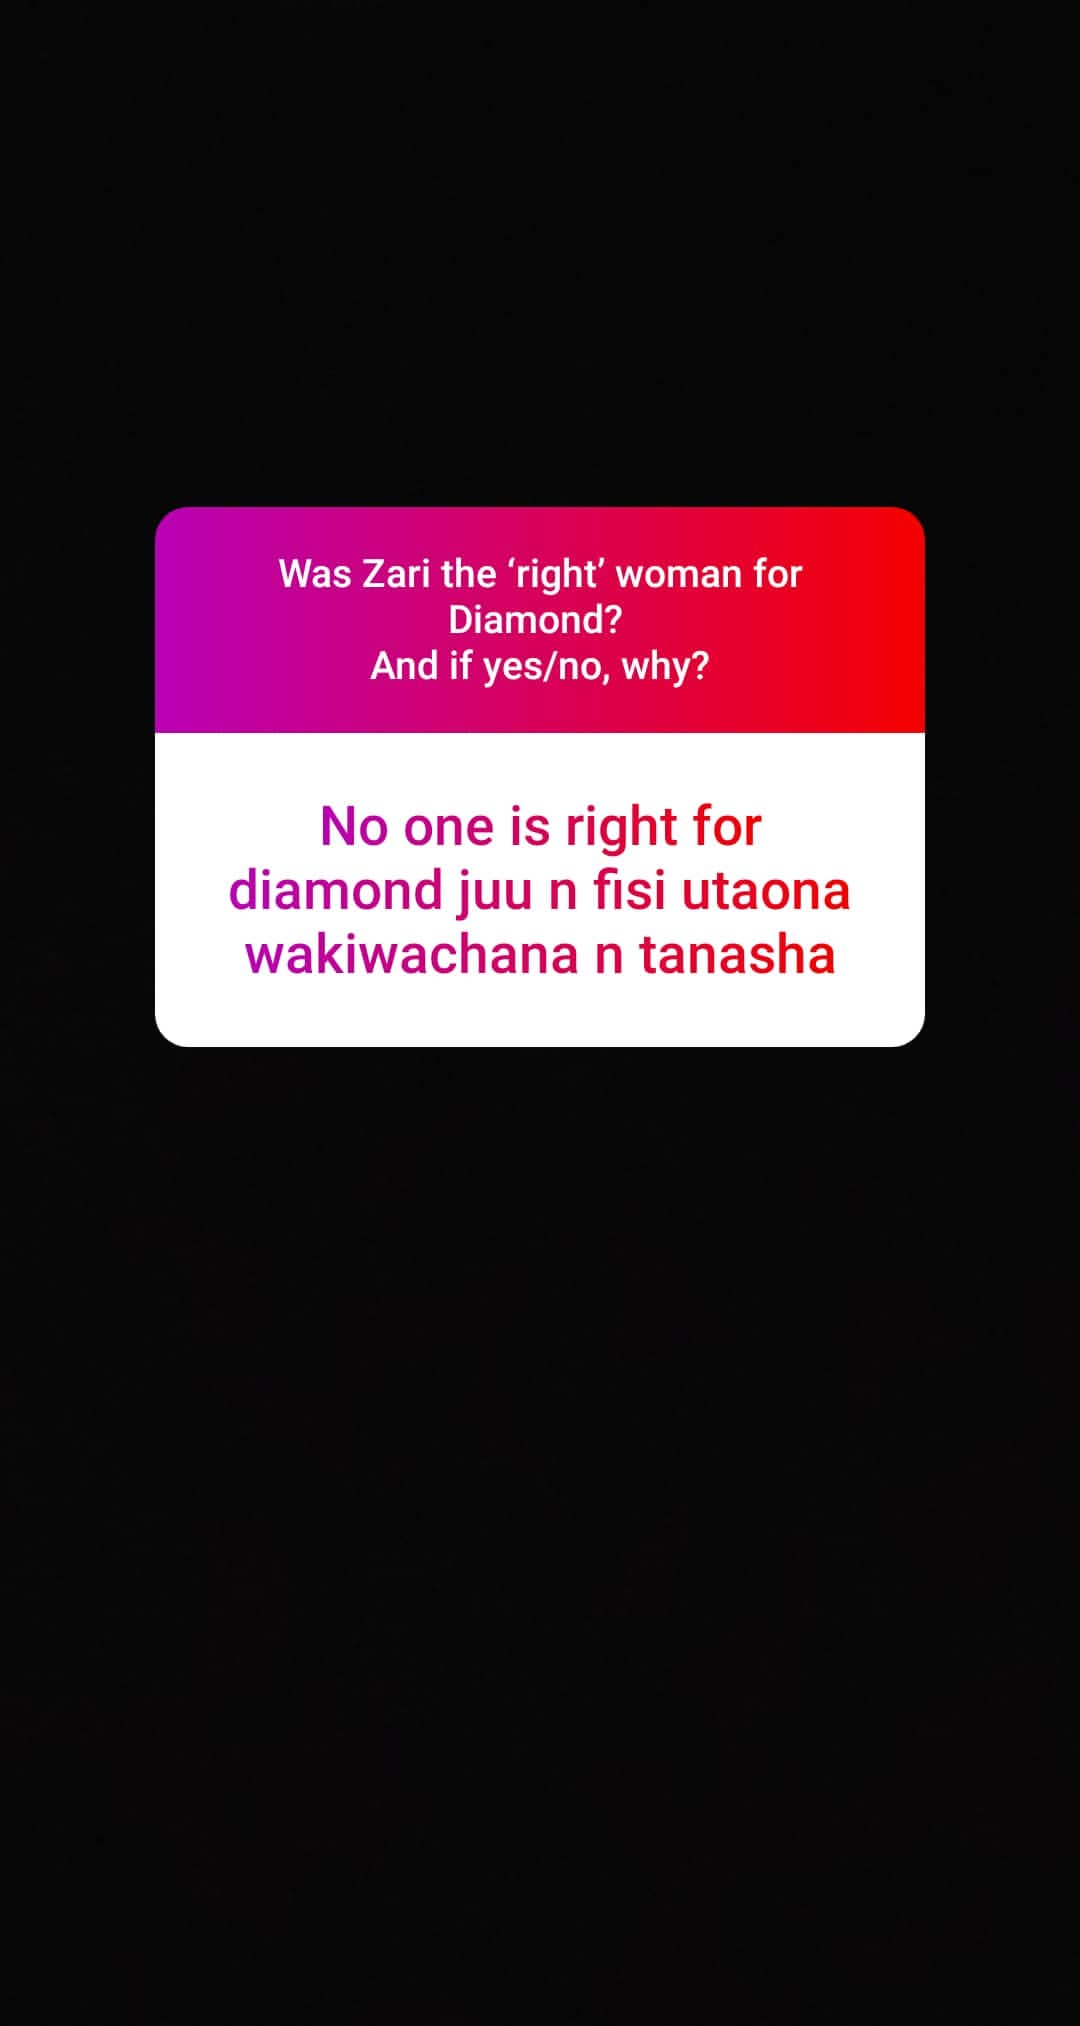 52665258 2302593456680494 7792304940028275438 n - Zari is the only woman Diamond Platnumz could have settled down with – poll